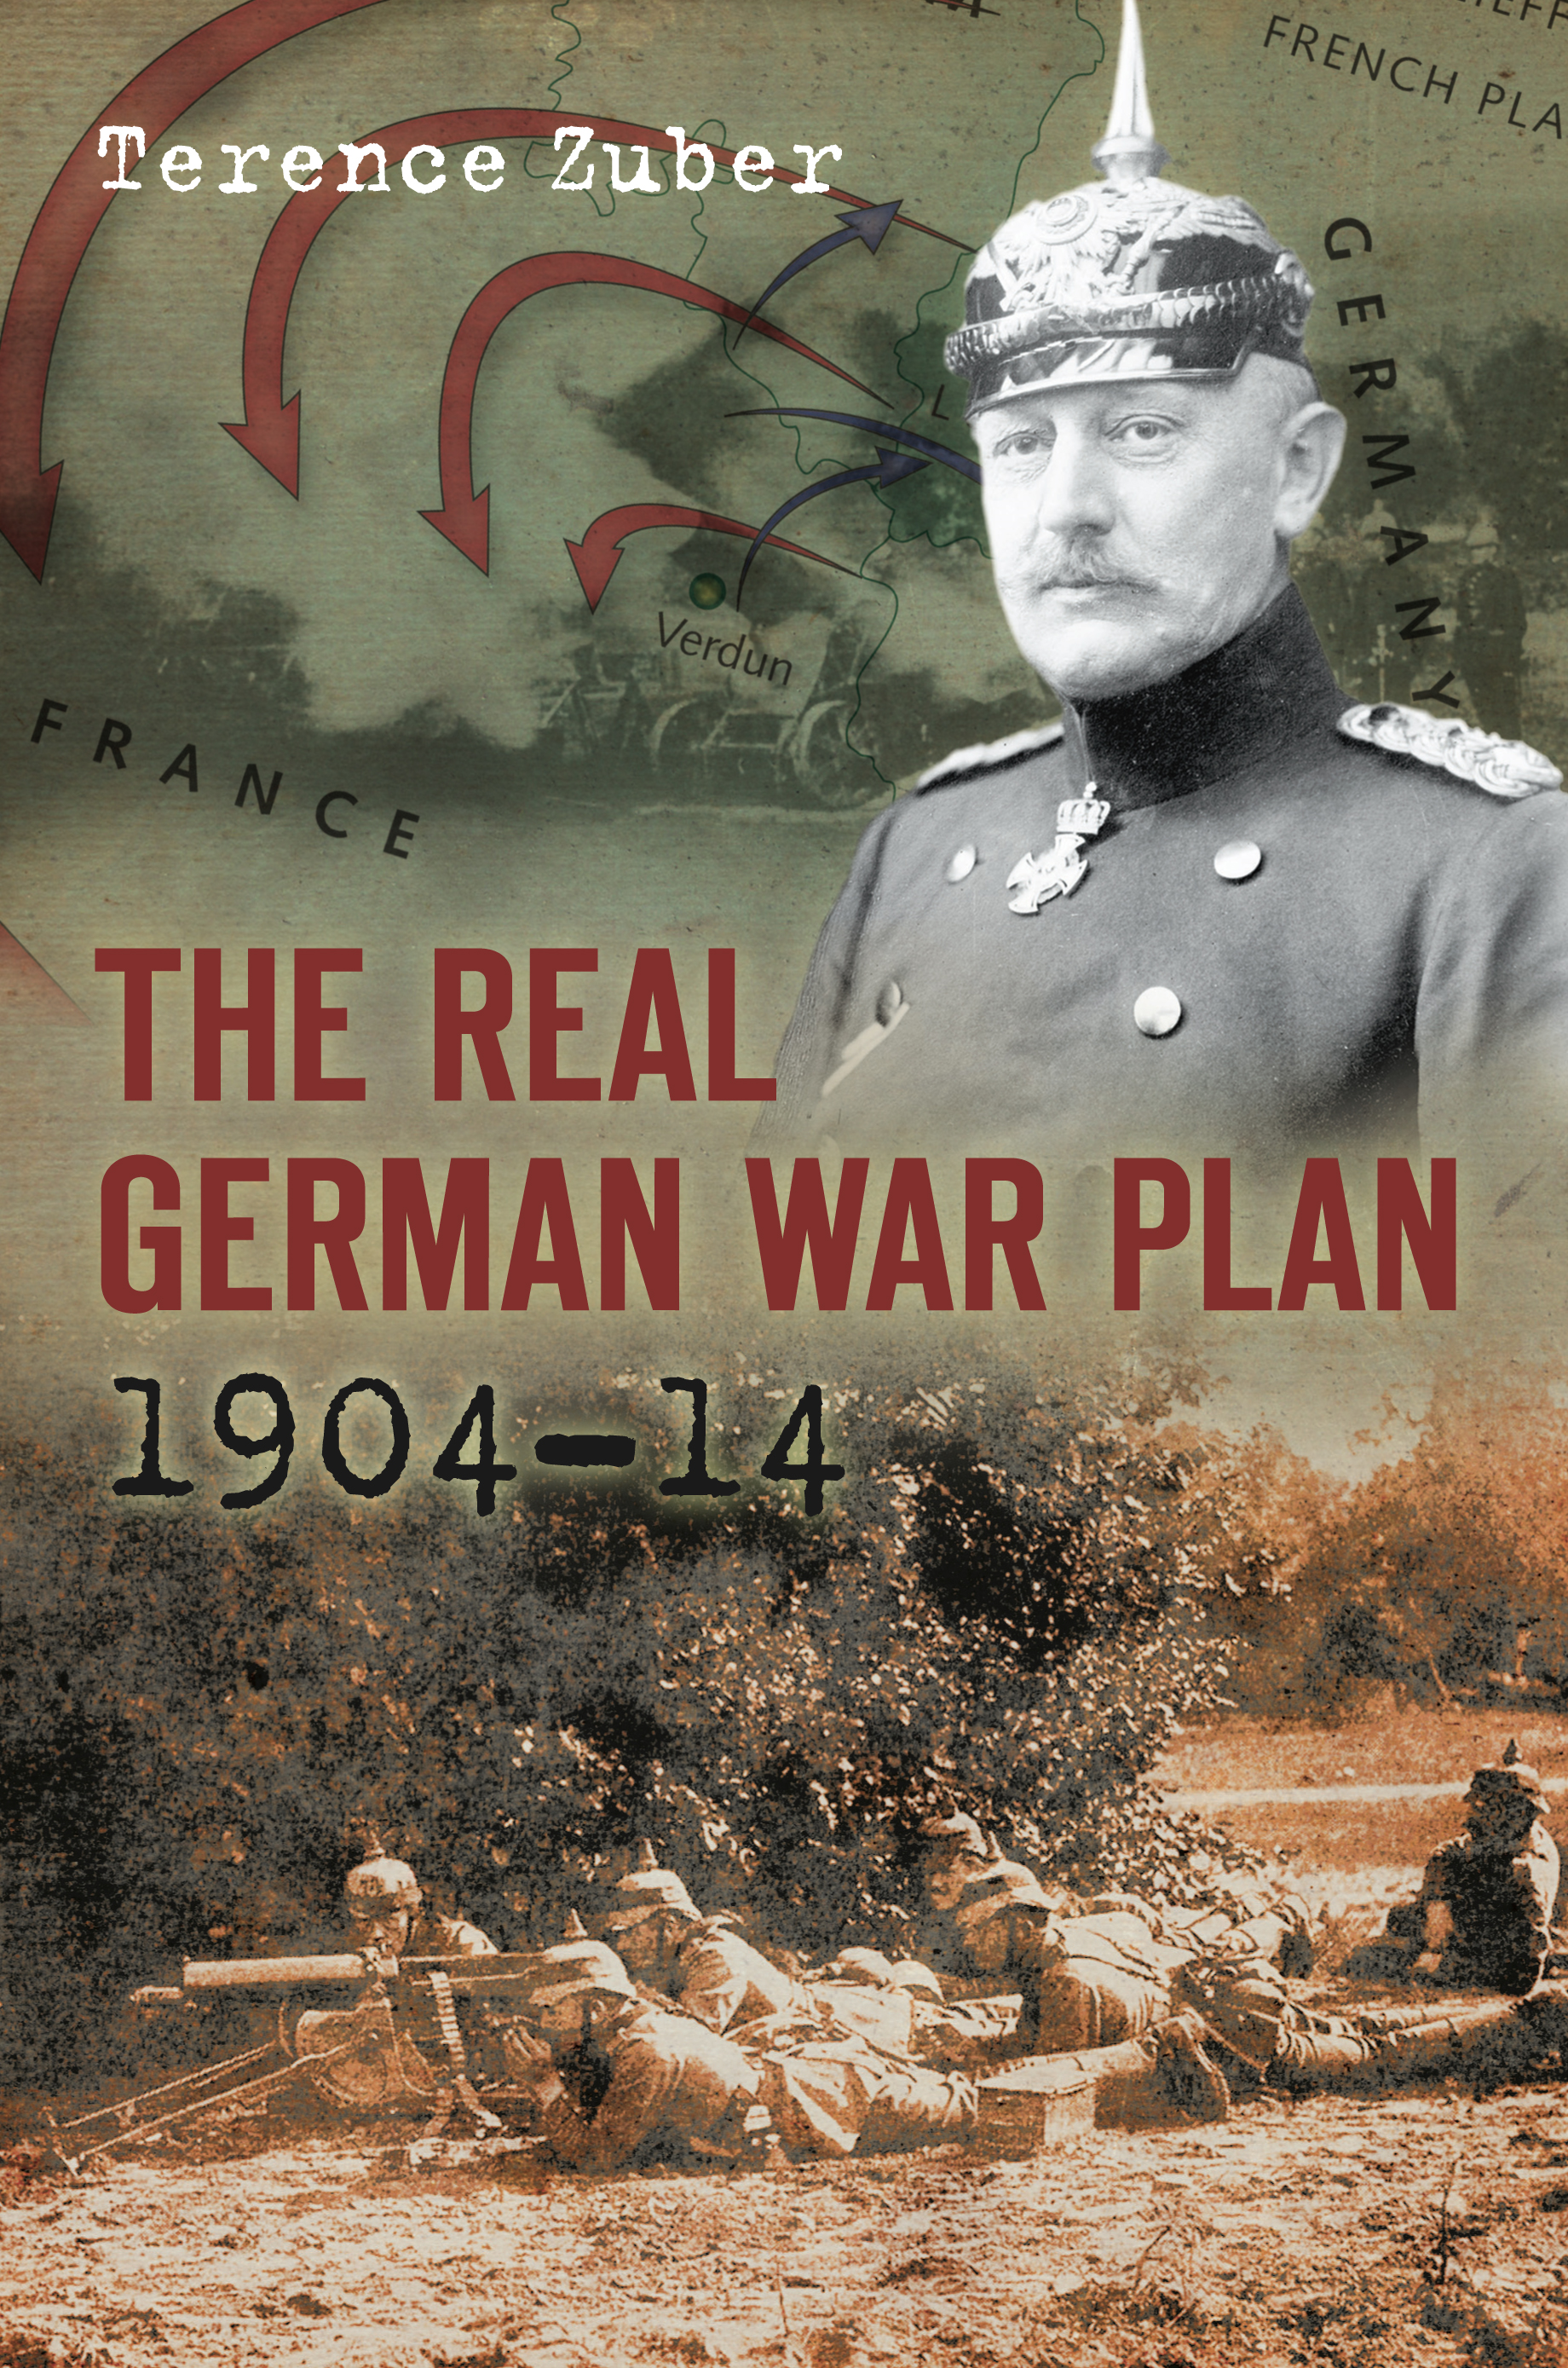 The Real German War Plan